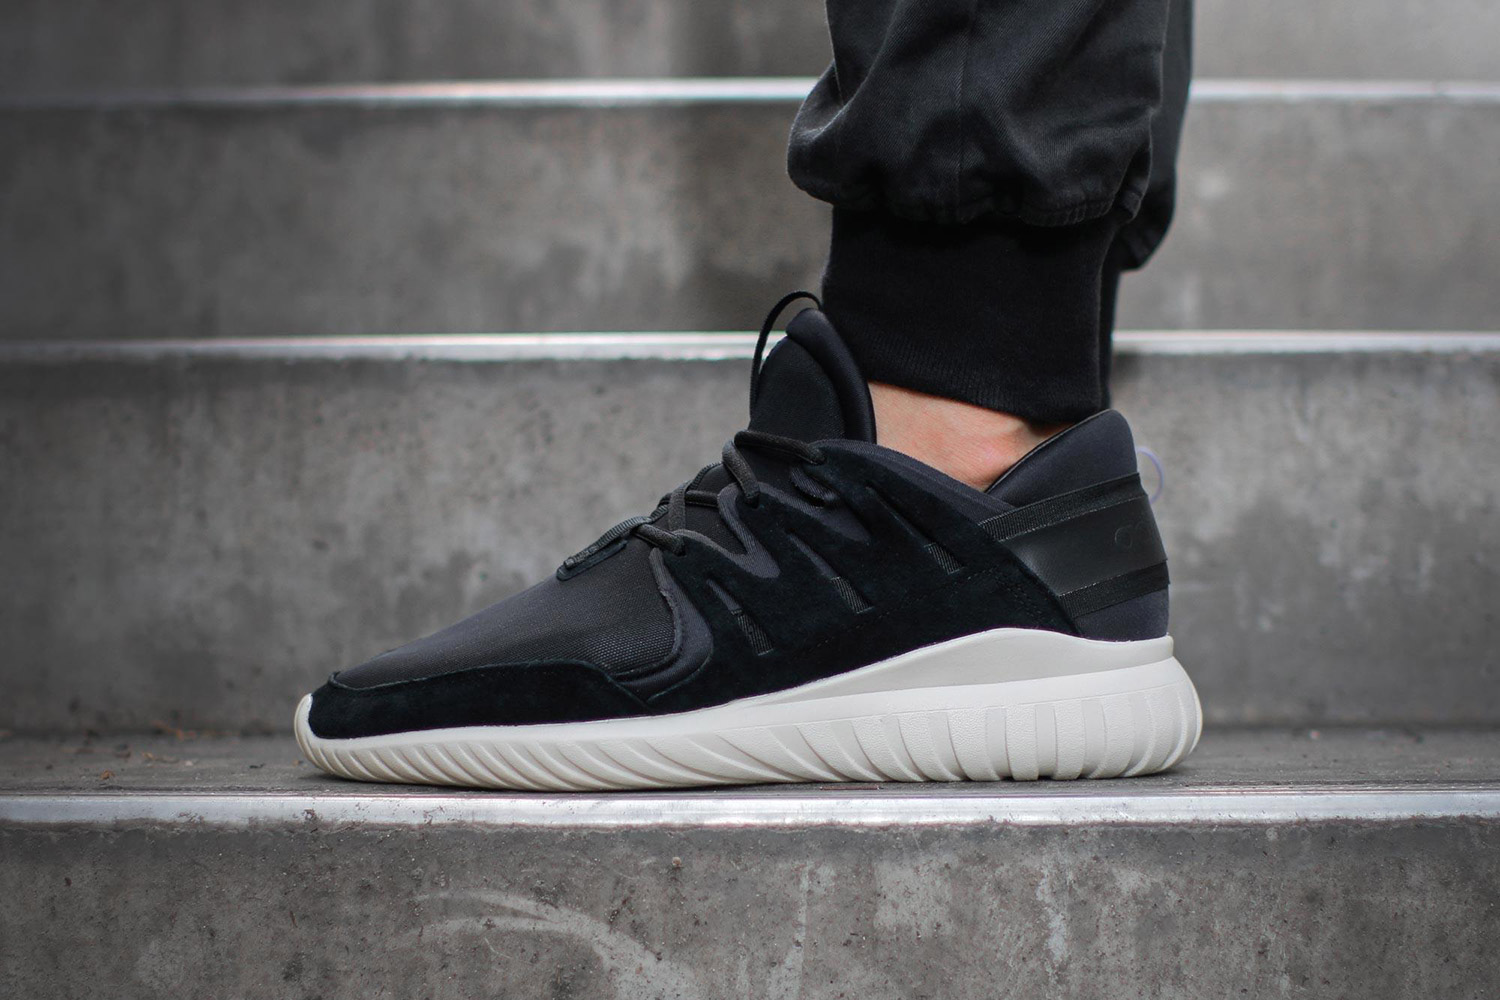 Adidas Tubular Doom PK 'Black/Grey' Online Now.